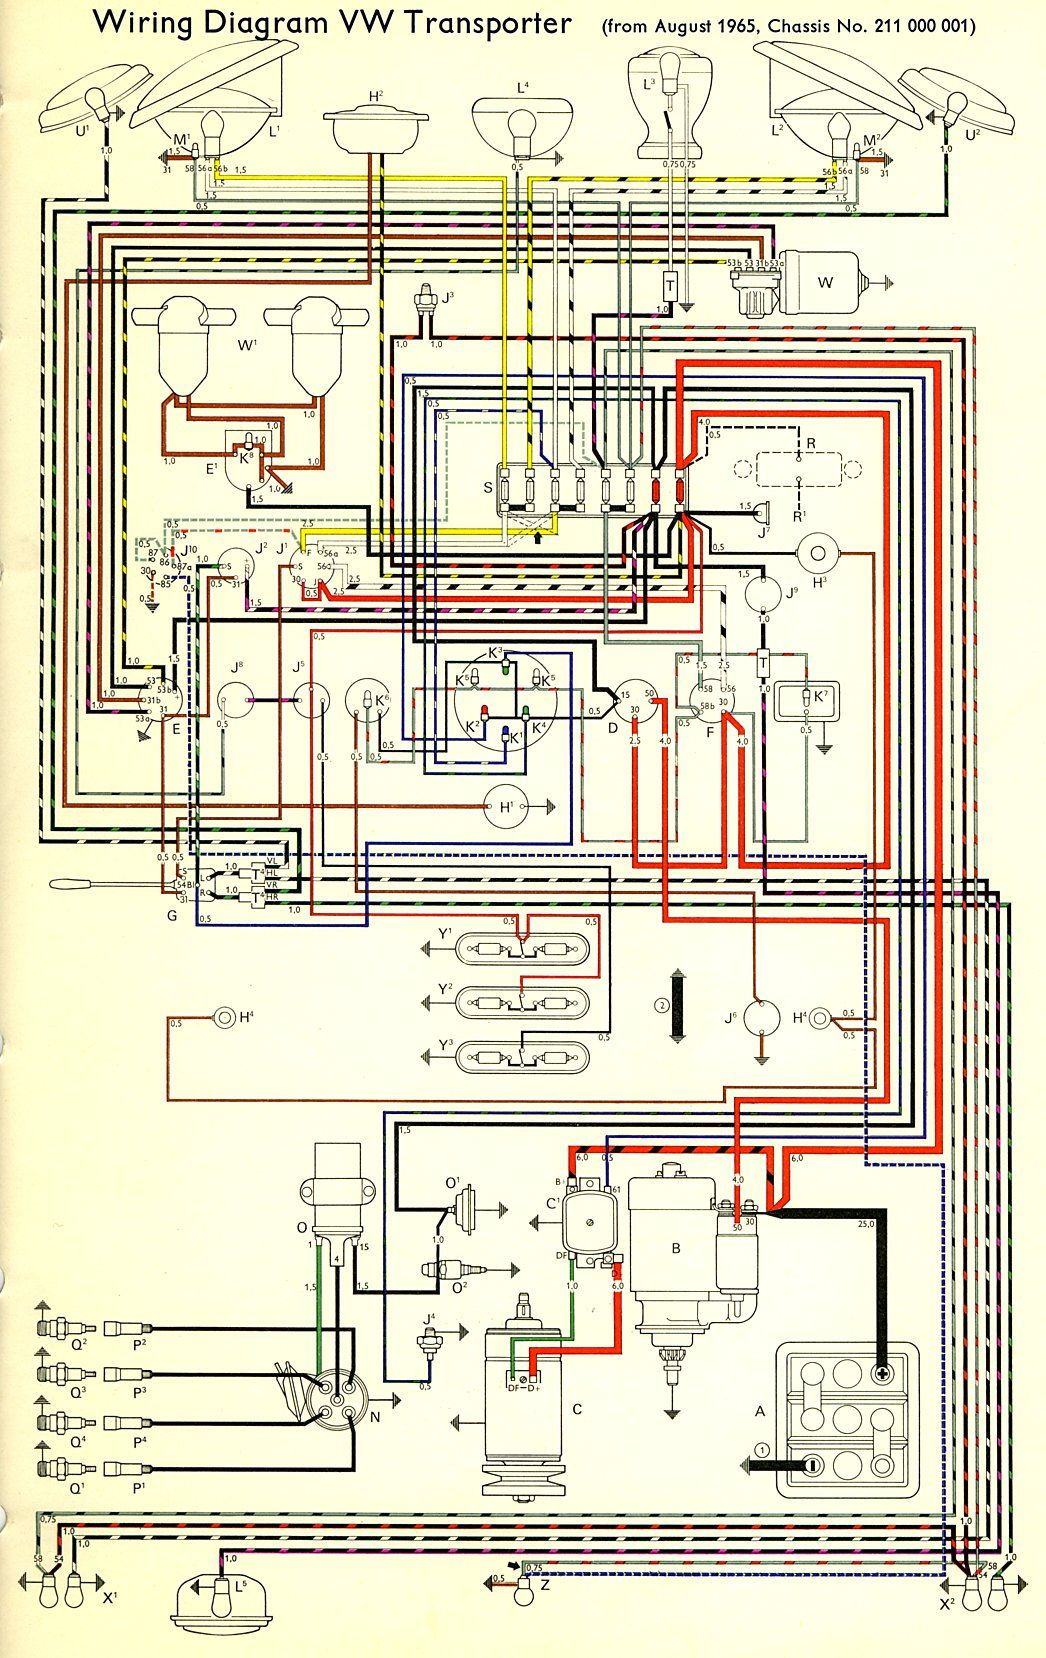 Diagram 1969 Volkswagen Beetle Ignition Wiring Diagram Full Version Hd Quality Wiring Diagram Humanbodydiagrams Antonellabevilacqua It